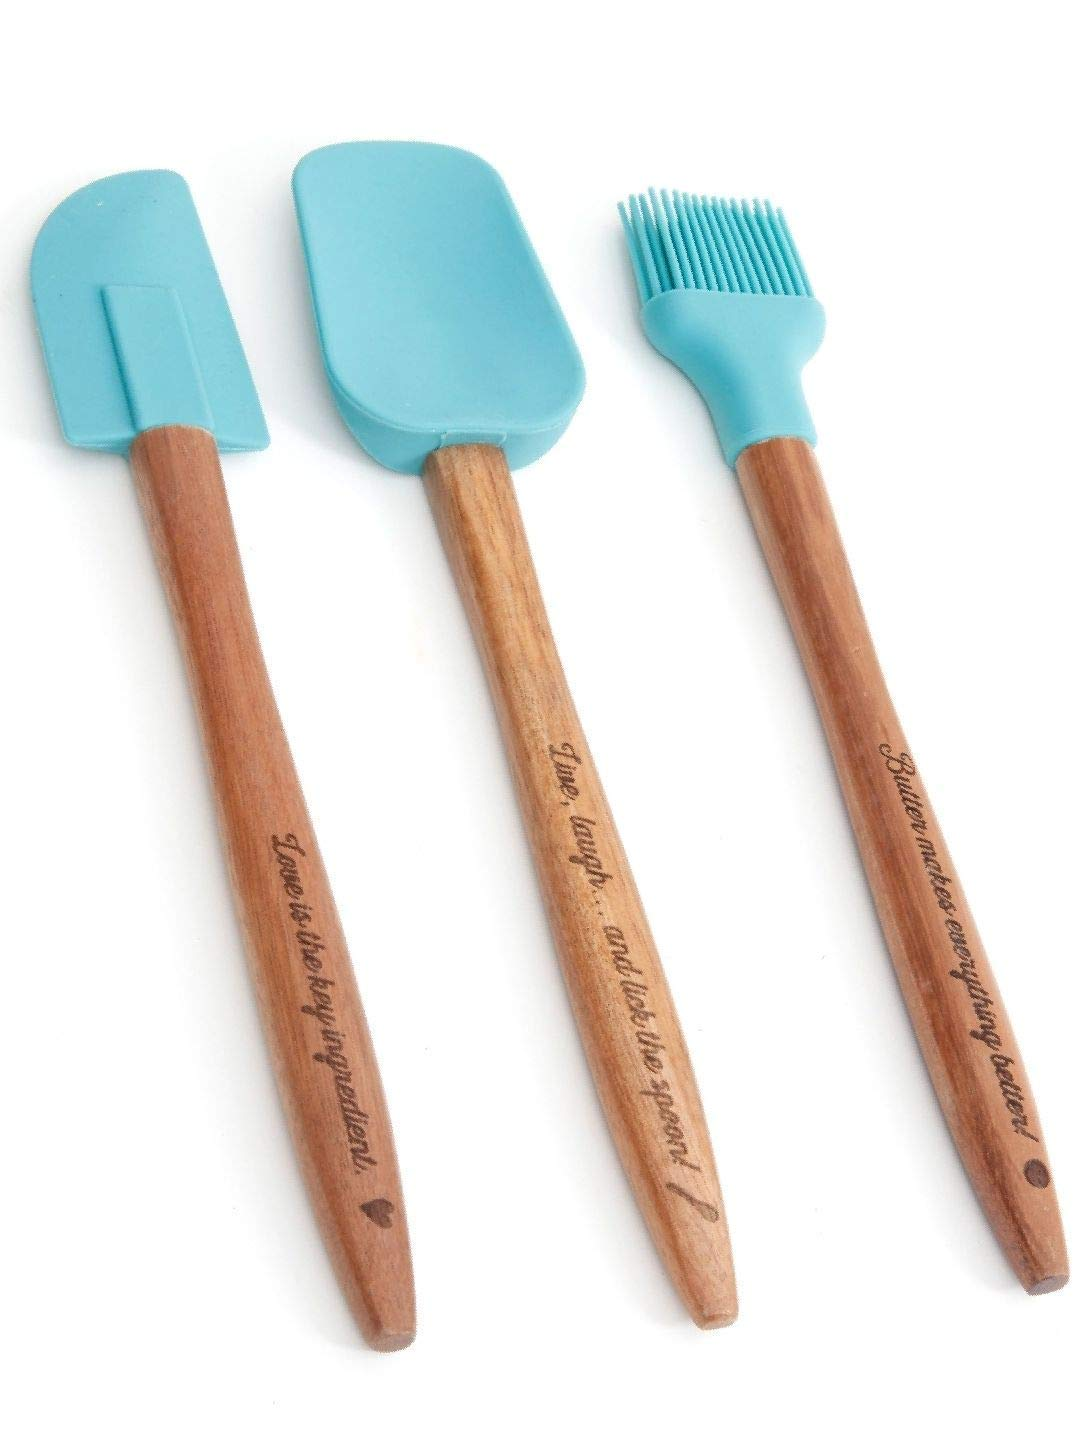 The Pioneer Woman Cowboy Rustic 3-Piece Silicone Head Utensil Set with Acacia Wood Handle, Turquoise/Blue